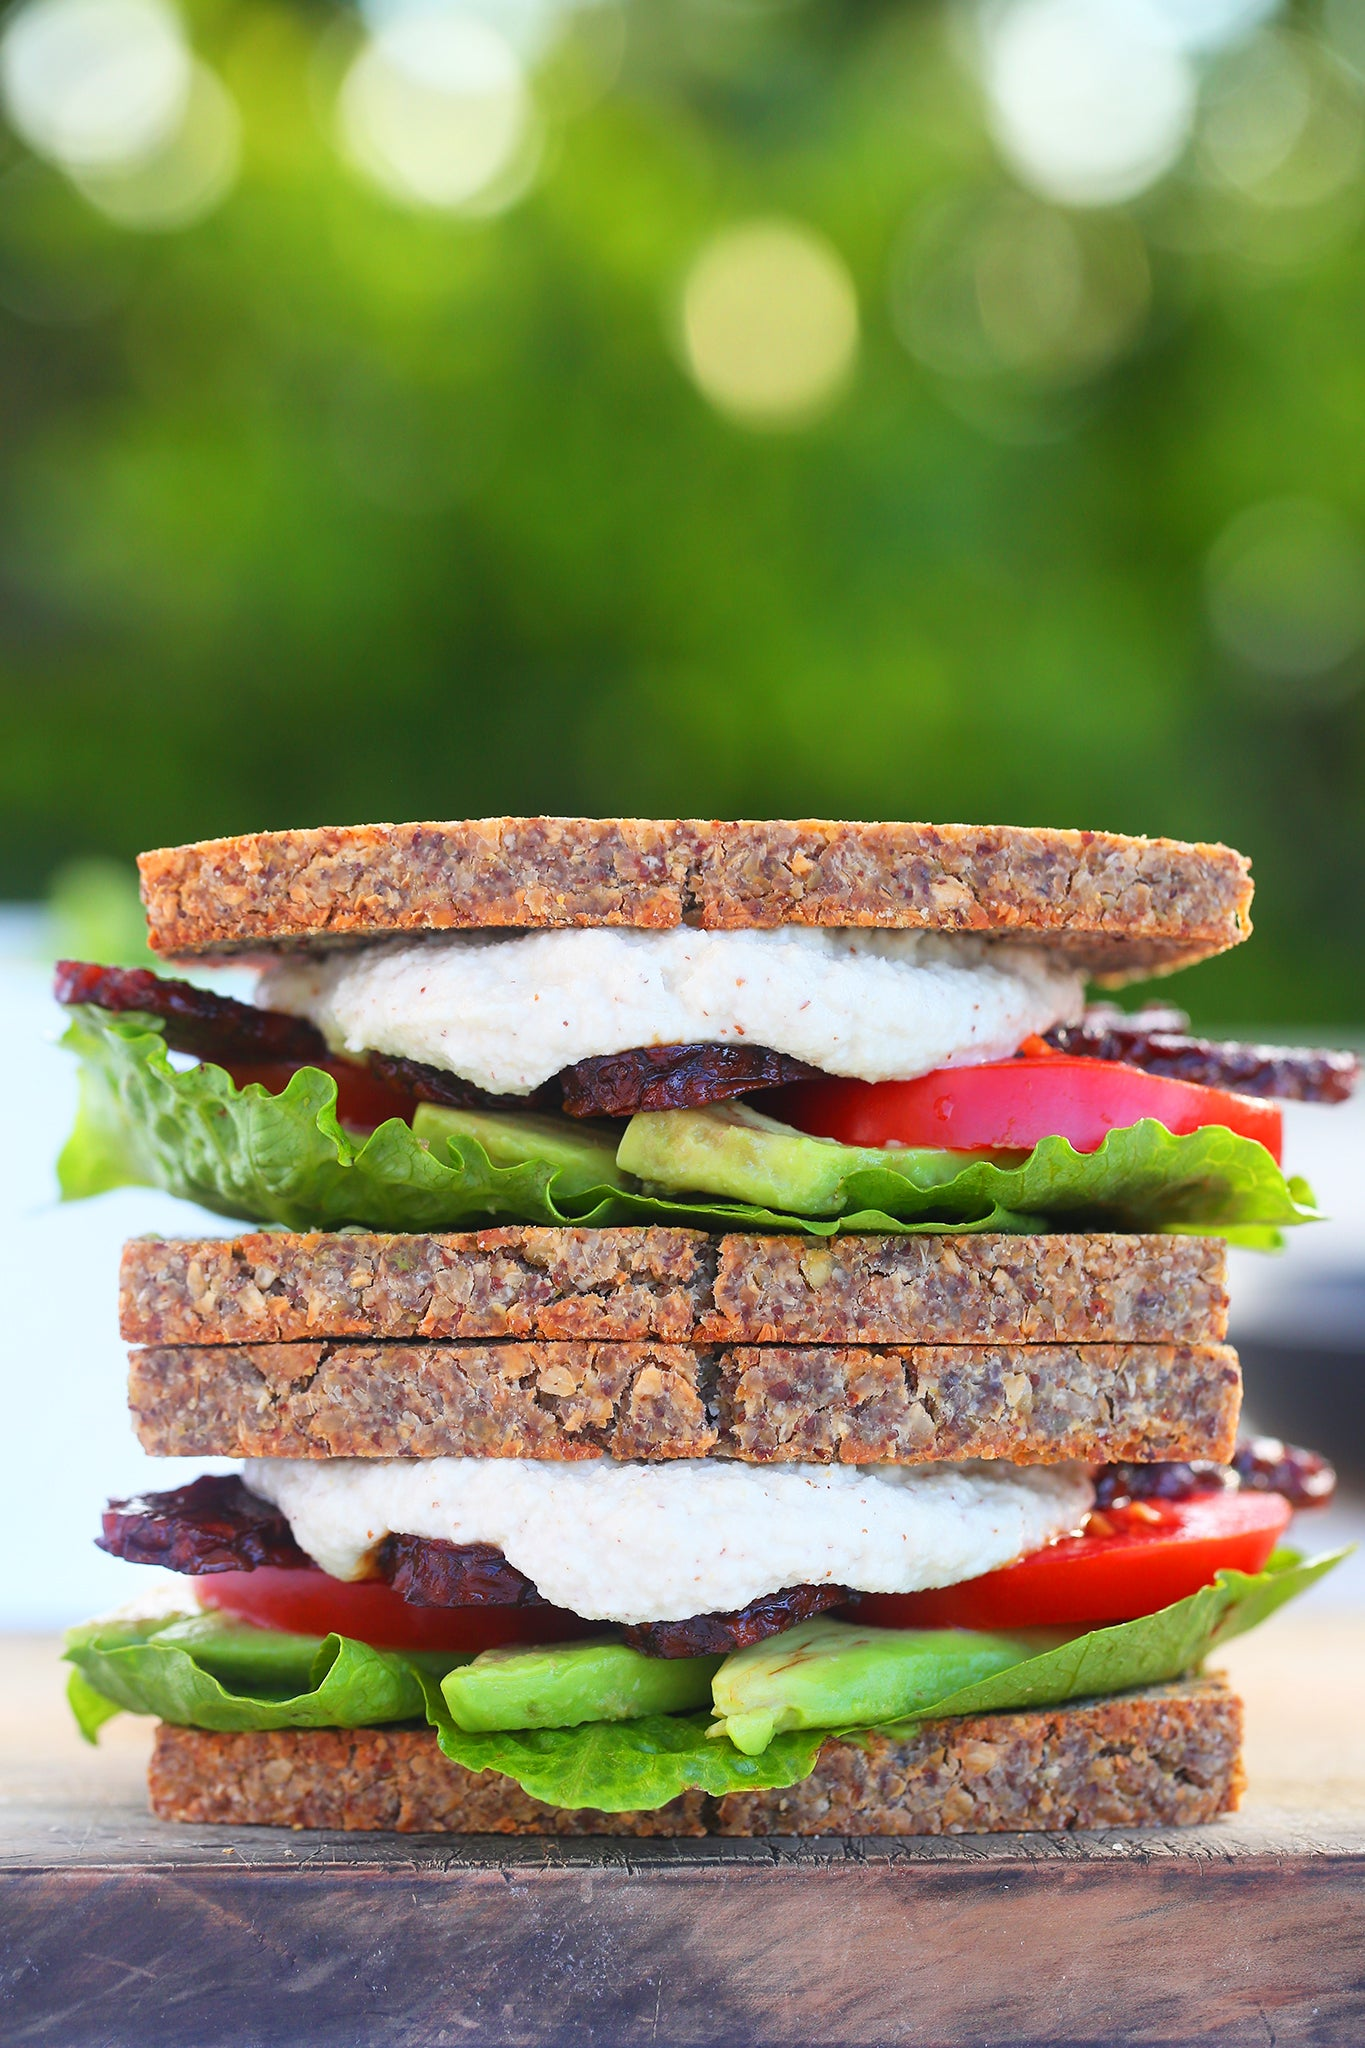 SMOKEY TEMPEH BLAT - vegan, plant based, dairy free, gluten free, natural, lunch, tempeh bacon, sweet and salty, begoodorganics 5